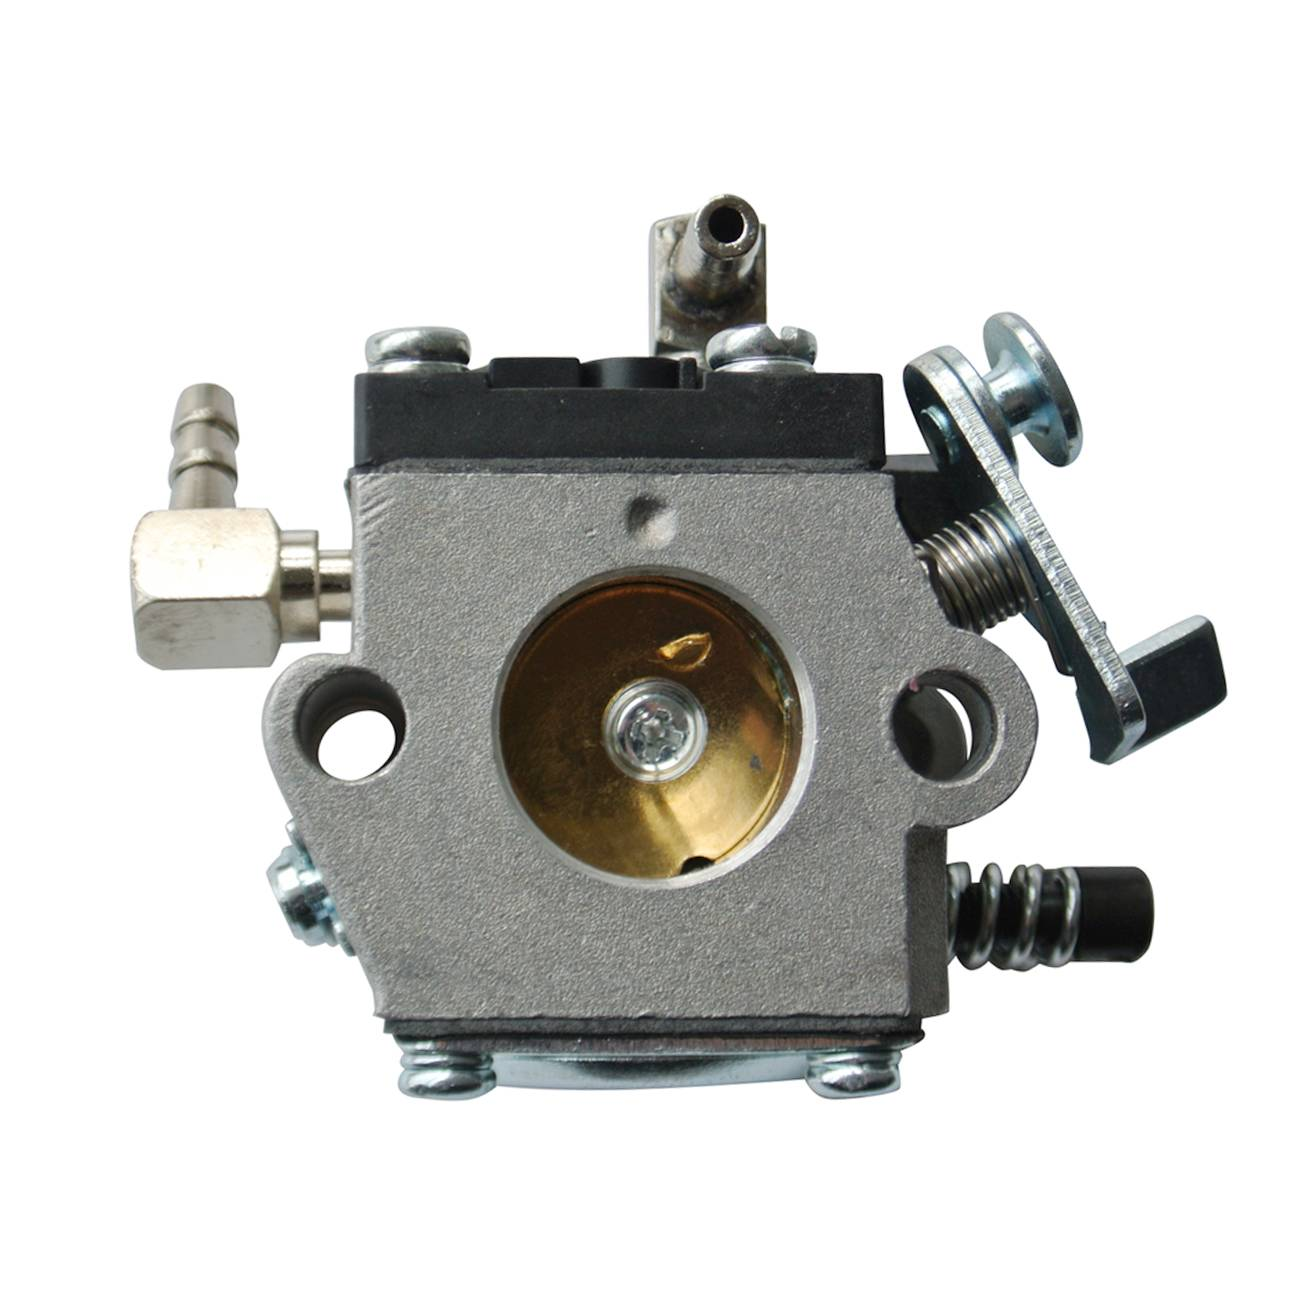 Carburetor Carb Fit Stihl 028 HU-40D  Tillotson Super Walbro WT-16B Parts